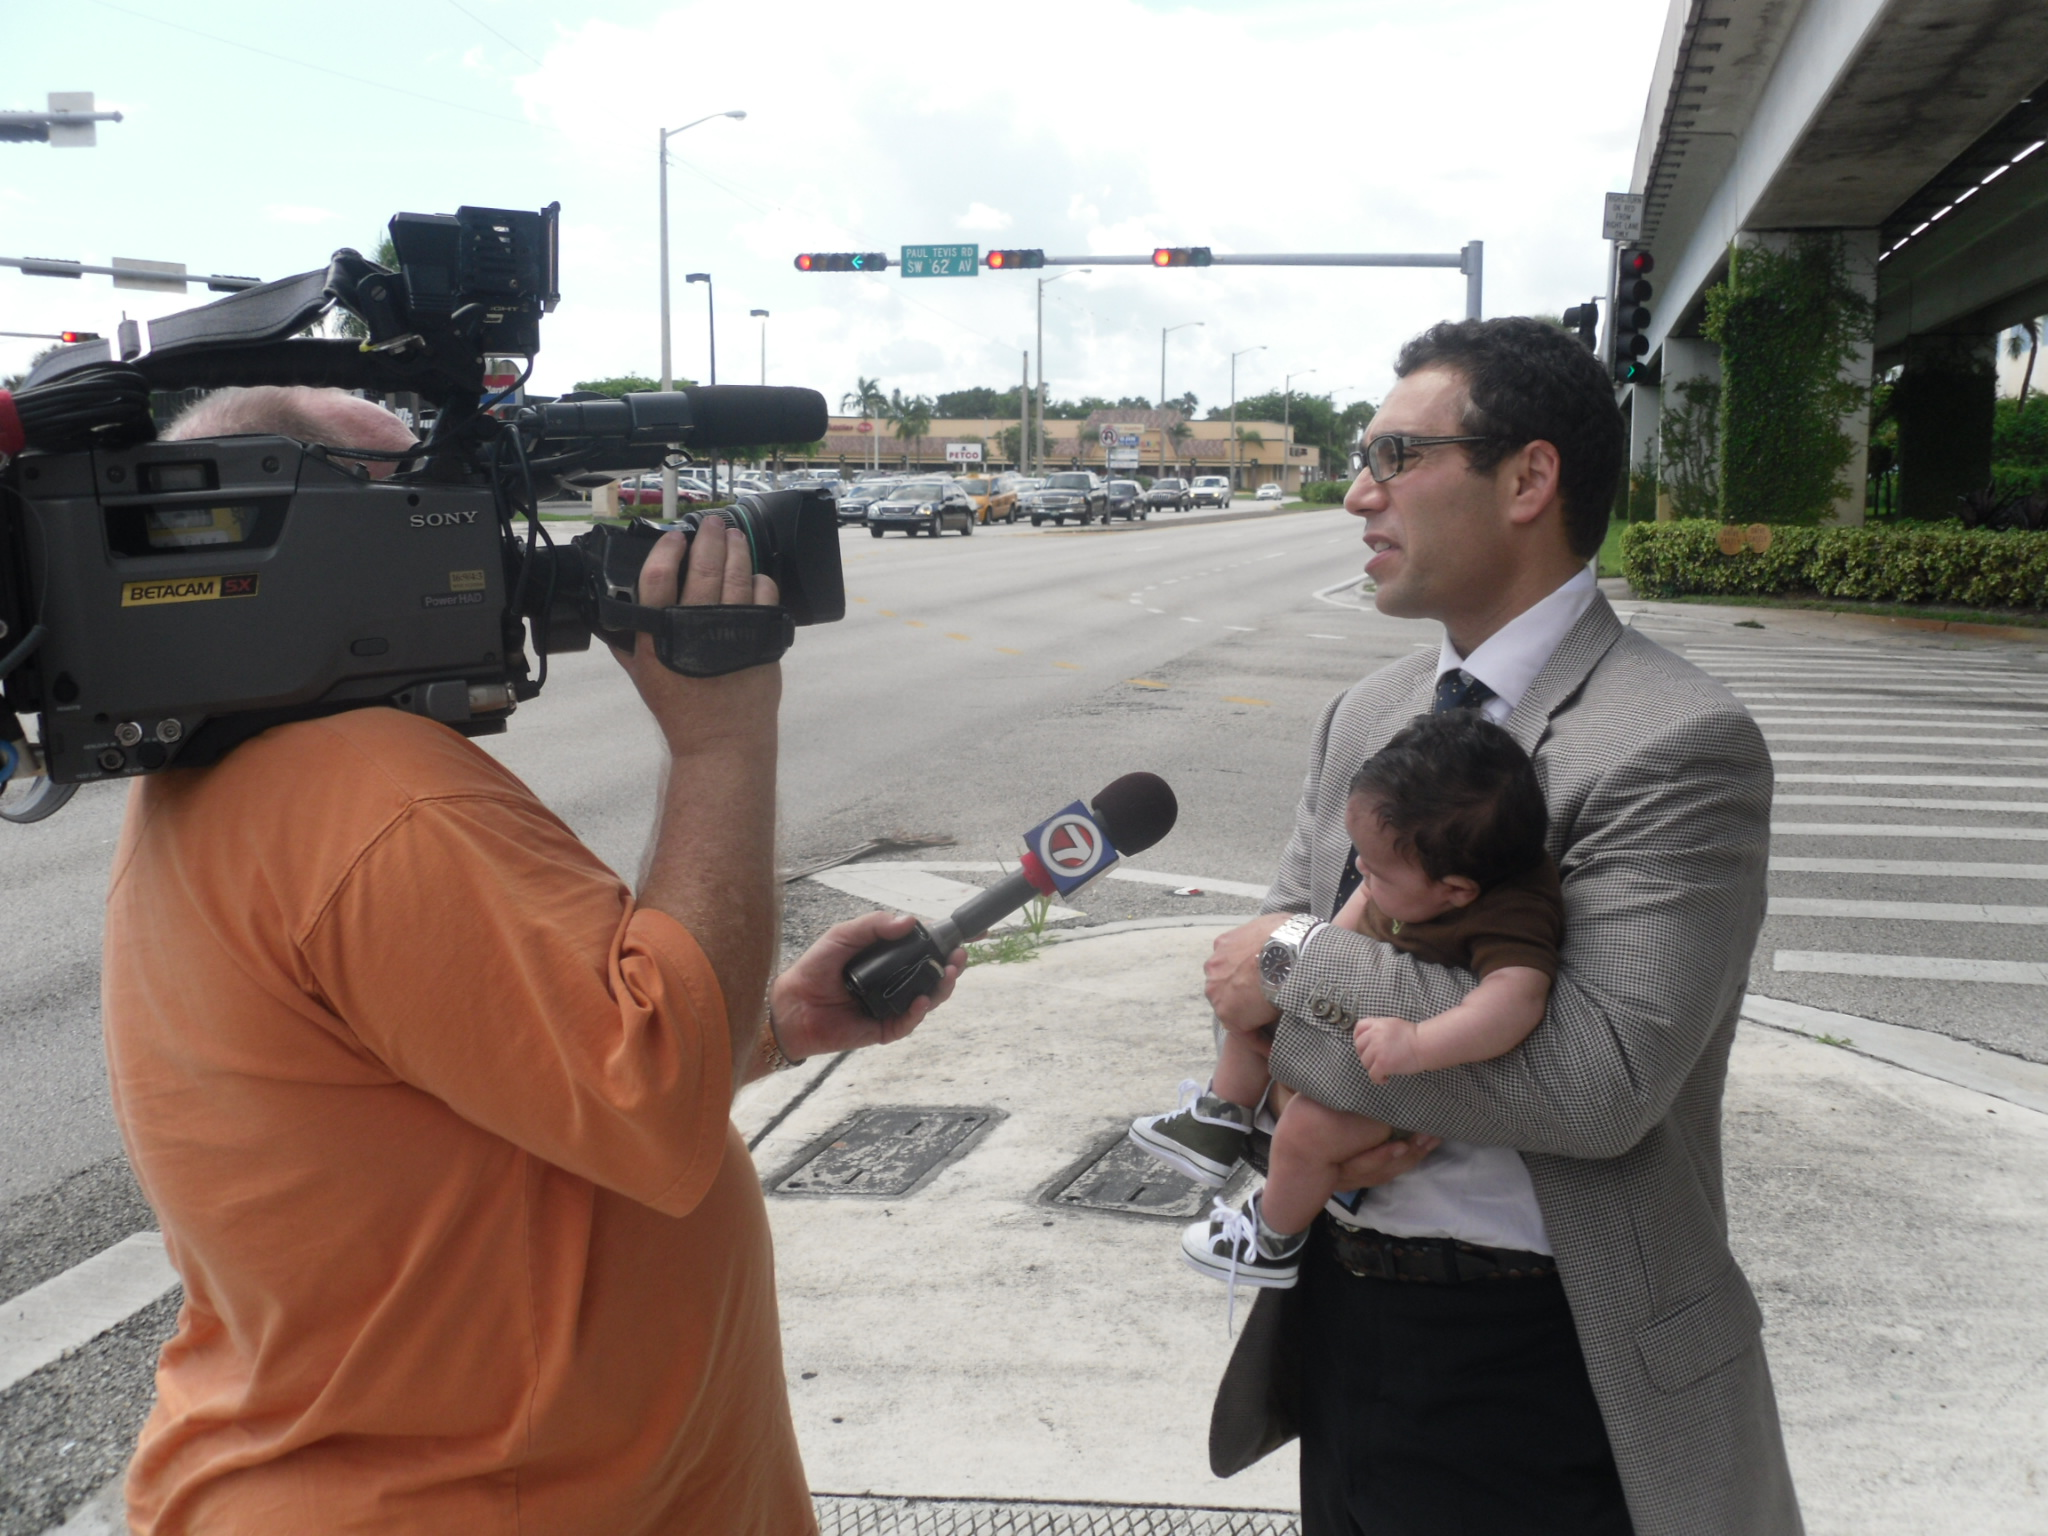 South Miami anti-circumcision protest rally with Intaction.org